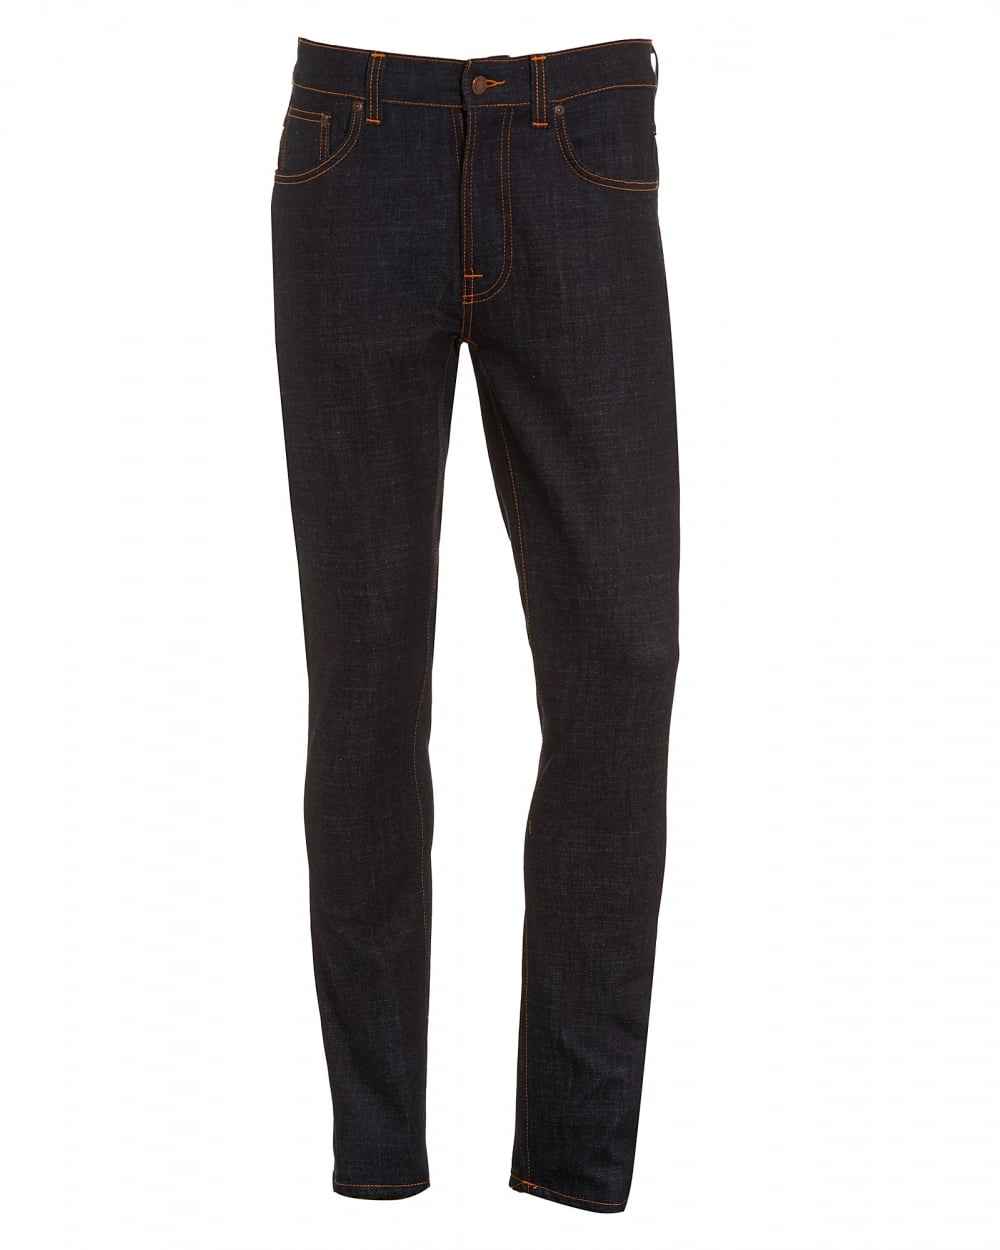 Nudie Lean Dean Slim-fit Dry Organic Denim Jeans - Dark denim Mit4D